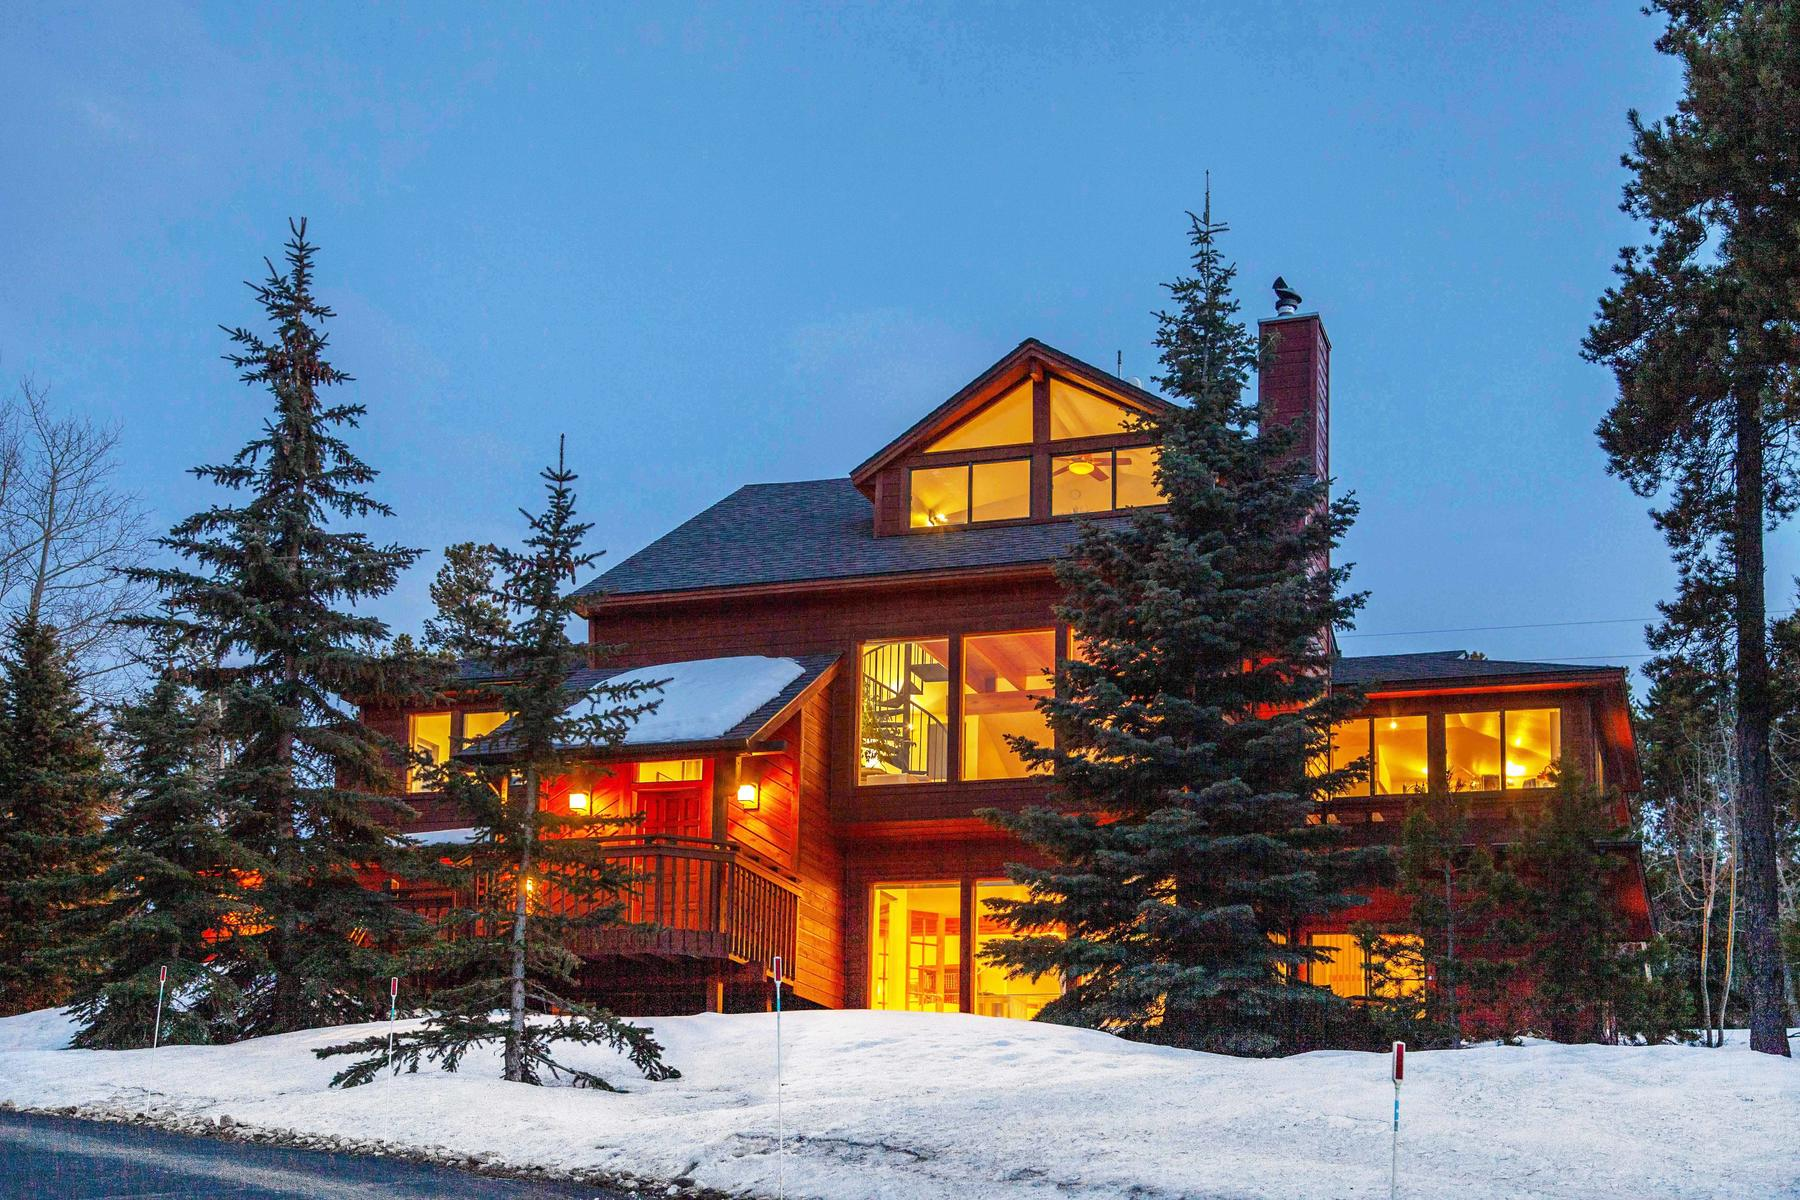 Single Family Homes for Active at Thoughtfully designed: This is Tranquil Colorado Mountain Living at its Finest! 1055 Indian Peak Road Golden, Colorado 80403 United States